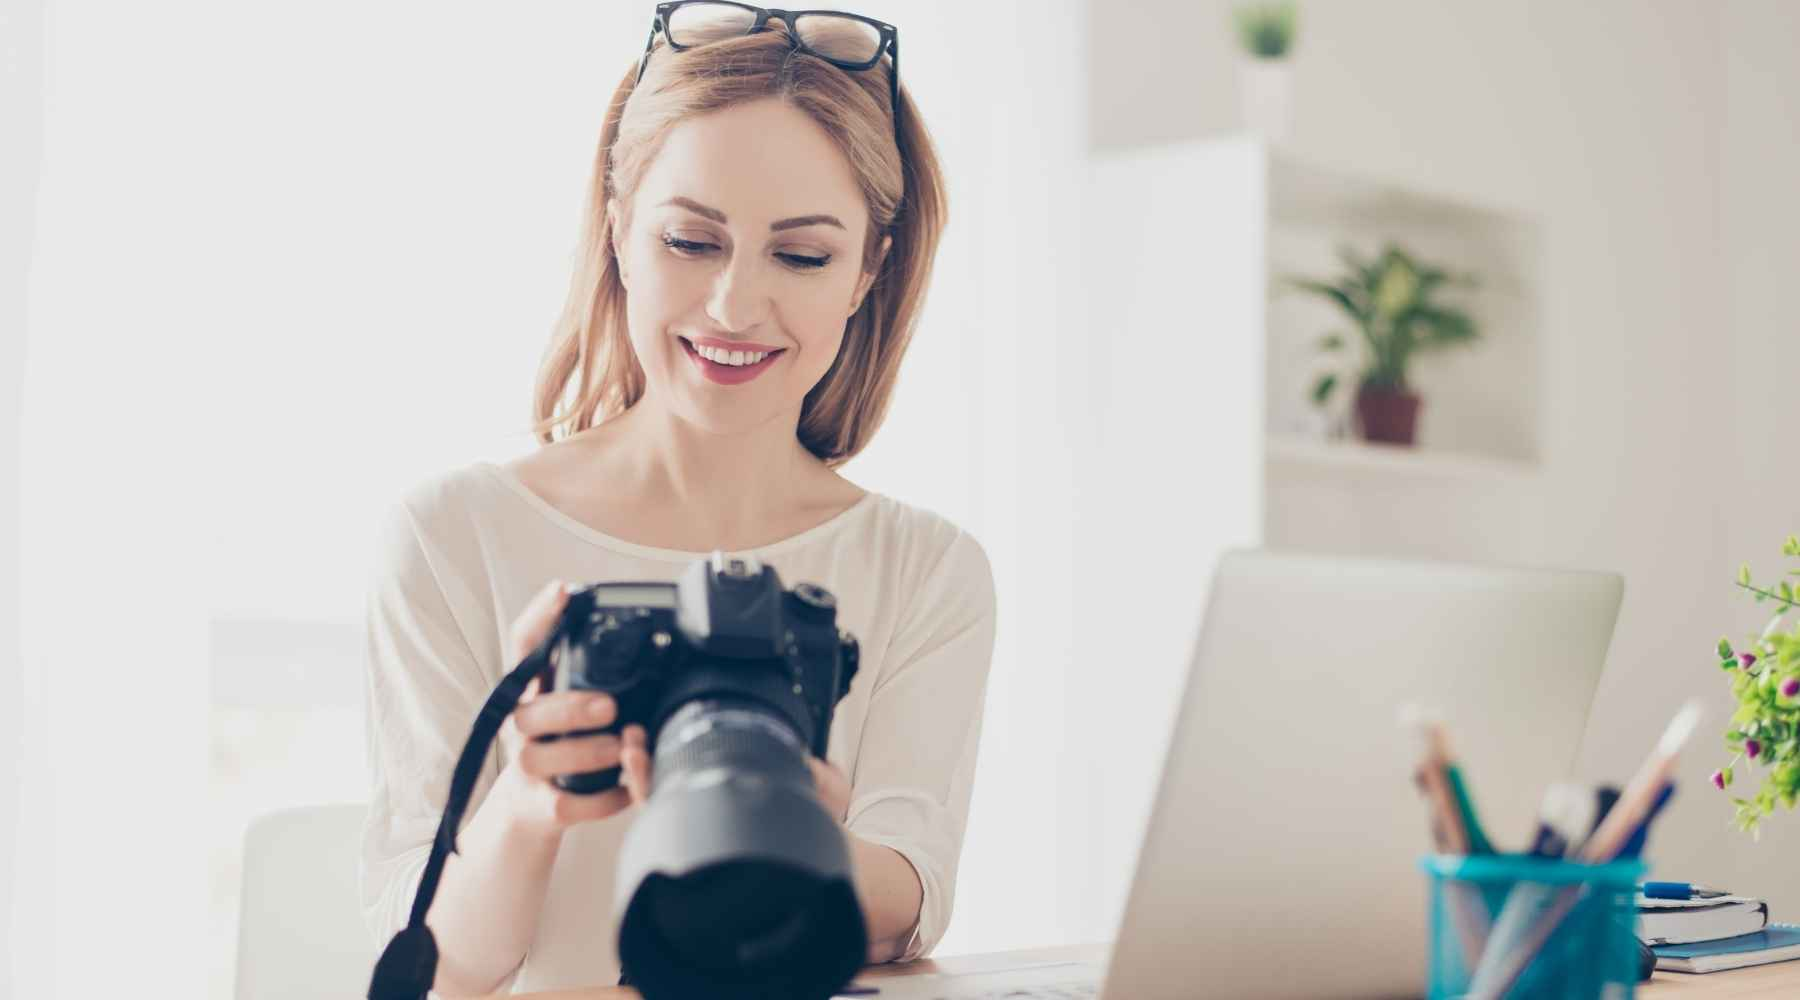 photographer - Creative ways to save money on your wedding: Top 20